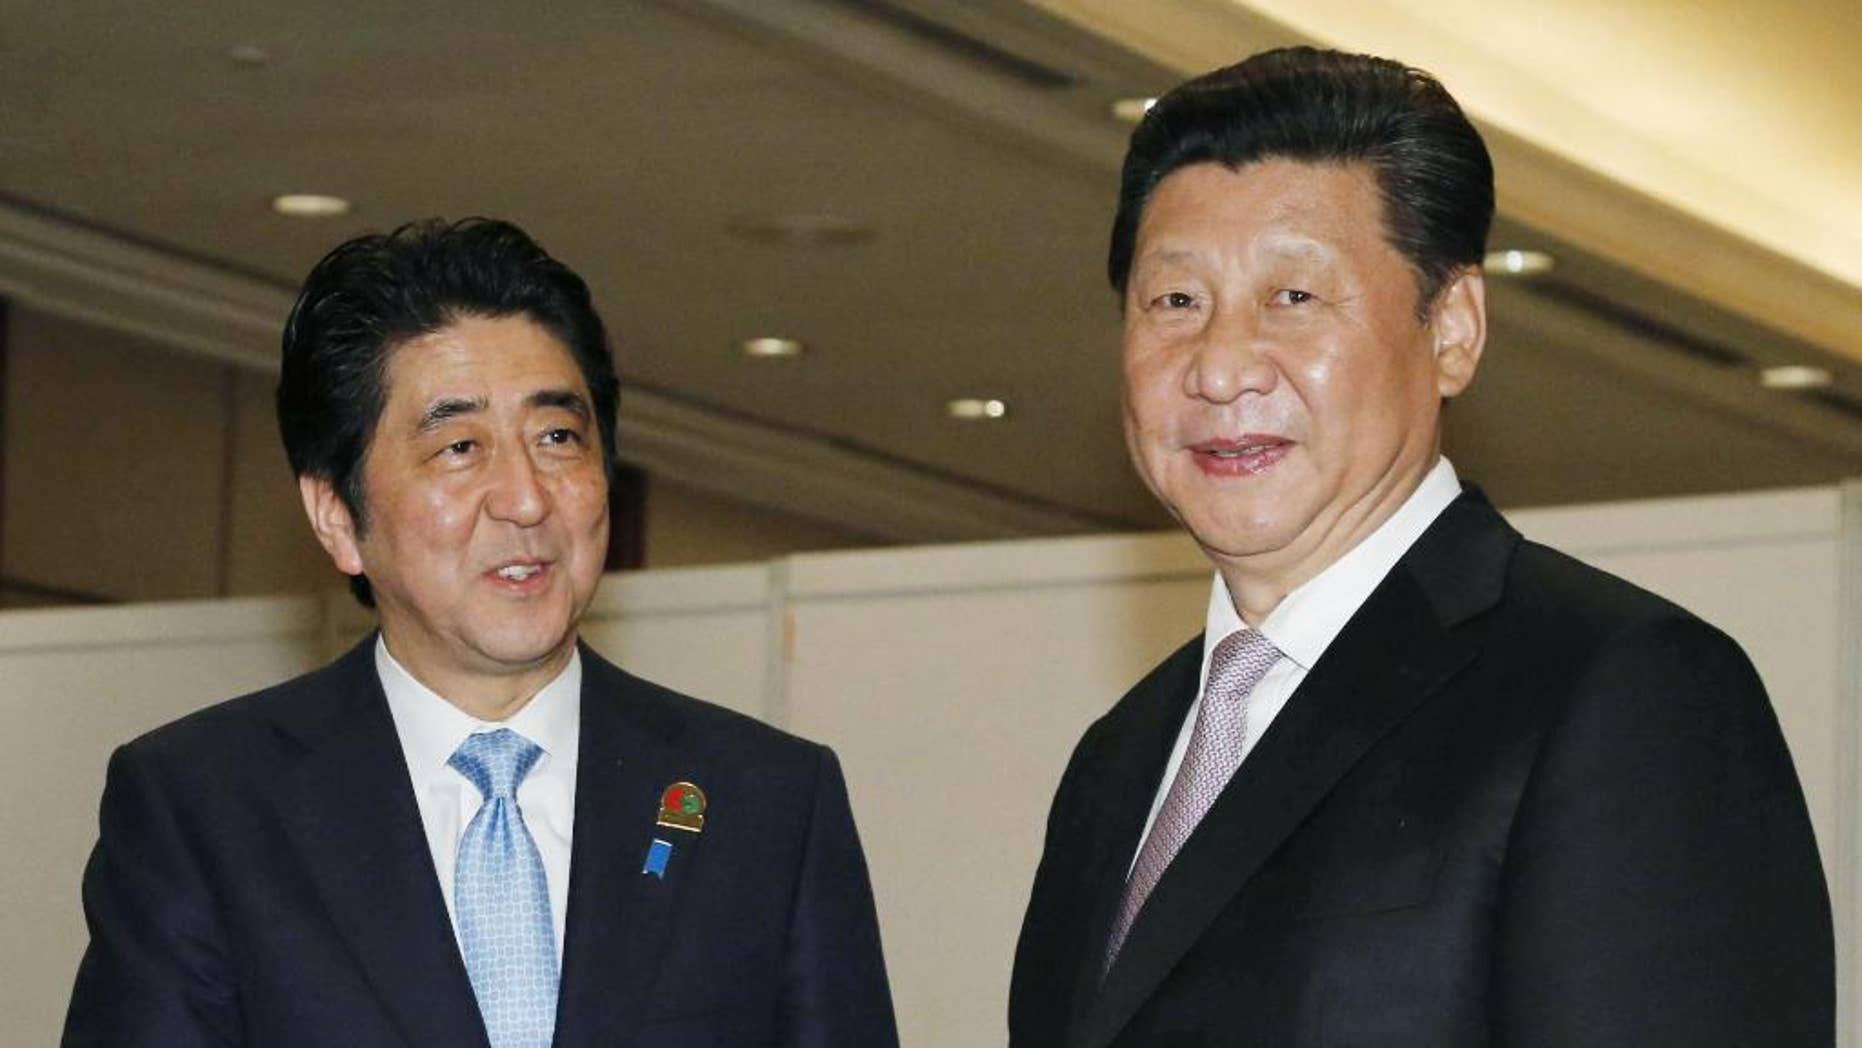 FILE - In this April 22, 2015 file photo, Chinese President Xi Jinping, right, shakes hands with Japan's Prime Minister Shinzo Abe during their bilateral meeting on the sideline of the Asian African Summit in Jakarta, Indonesia. Abe will not attend a military parade in China next week to commemorate the end of World War II, the government's top spokesman said Monday, Aug. 24, 2015. (Kyodo News via AP, File) JAPAN OUT, MANDATORY CREDIT